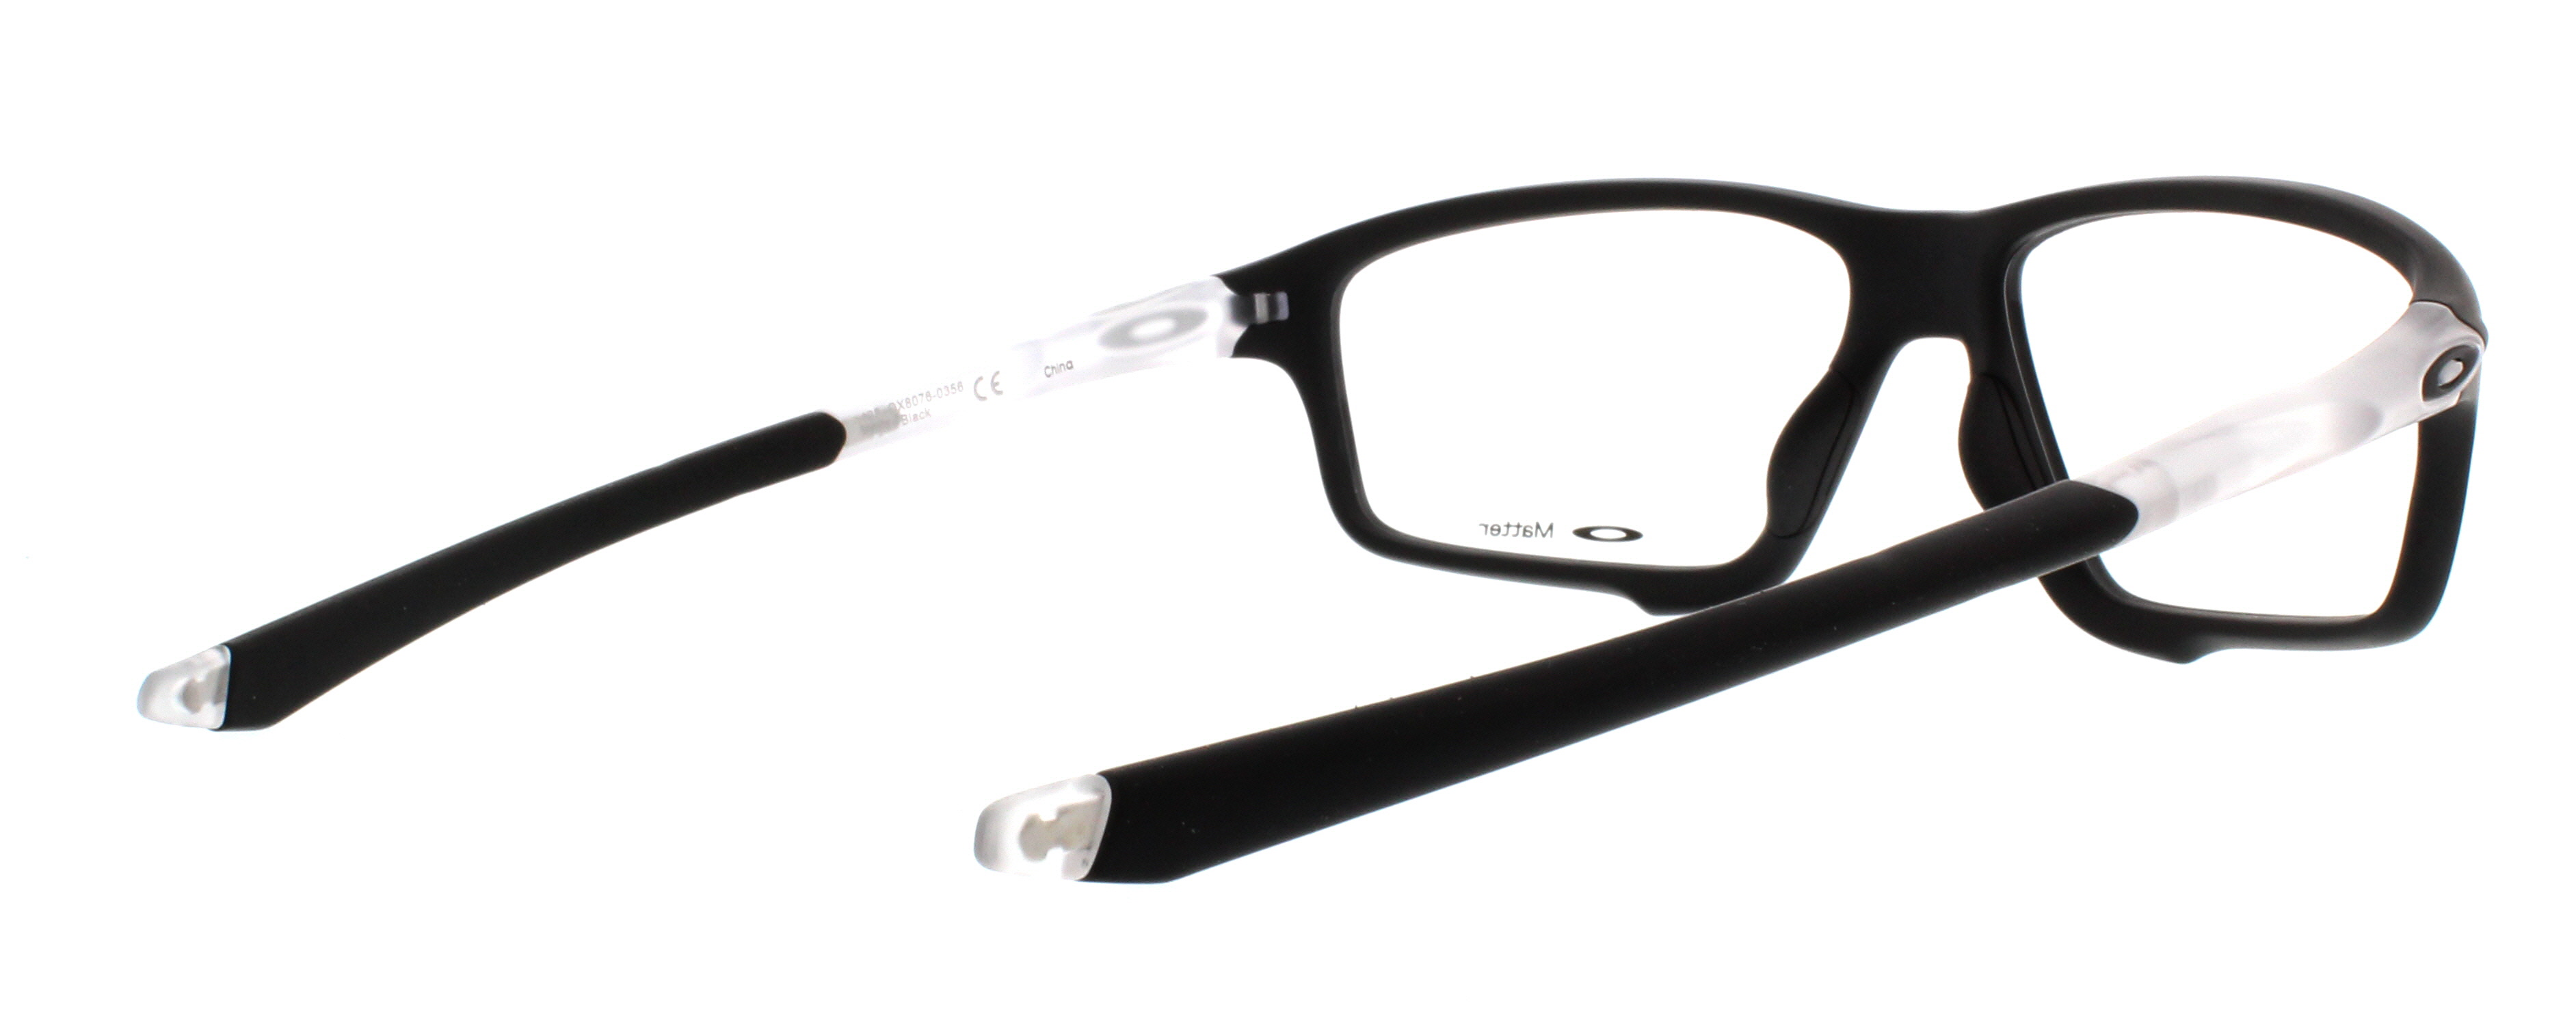 7f0e237e7f Oakley Crosslink Zero Parts Viewmotorjdi Org